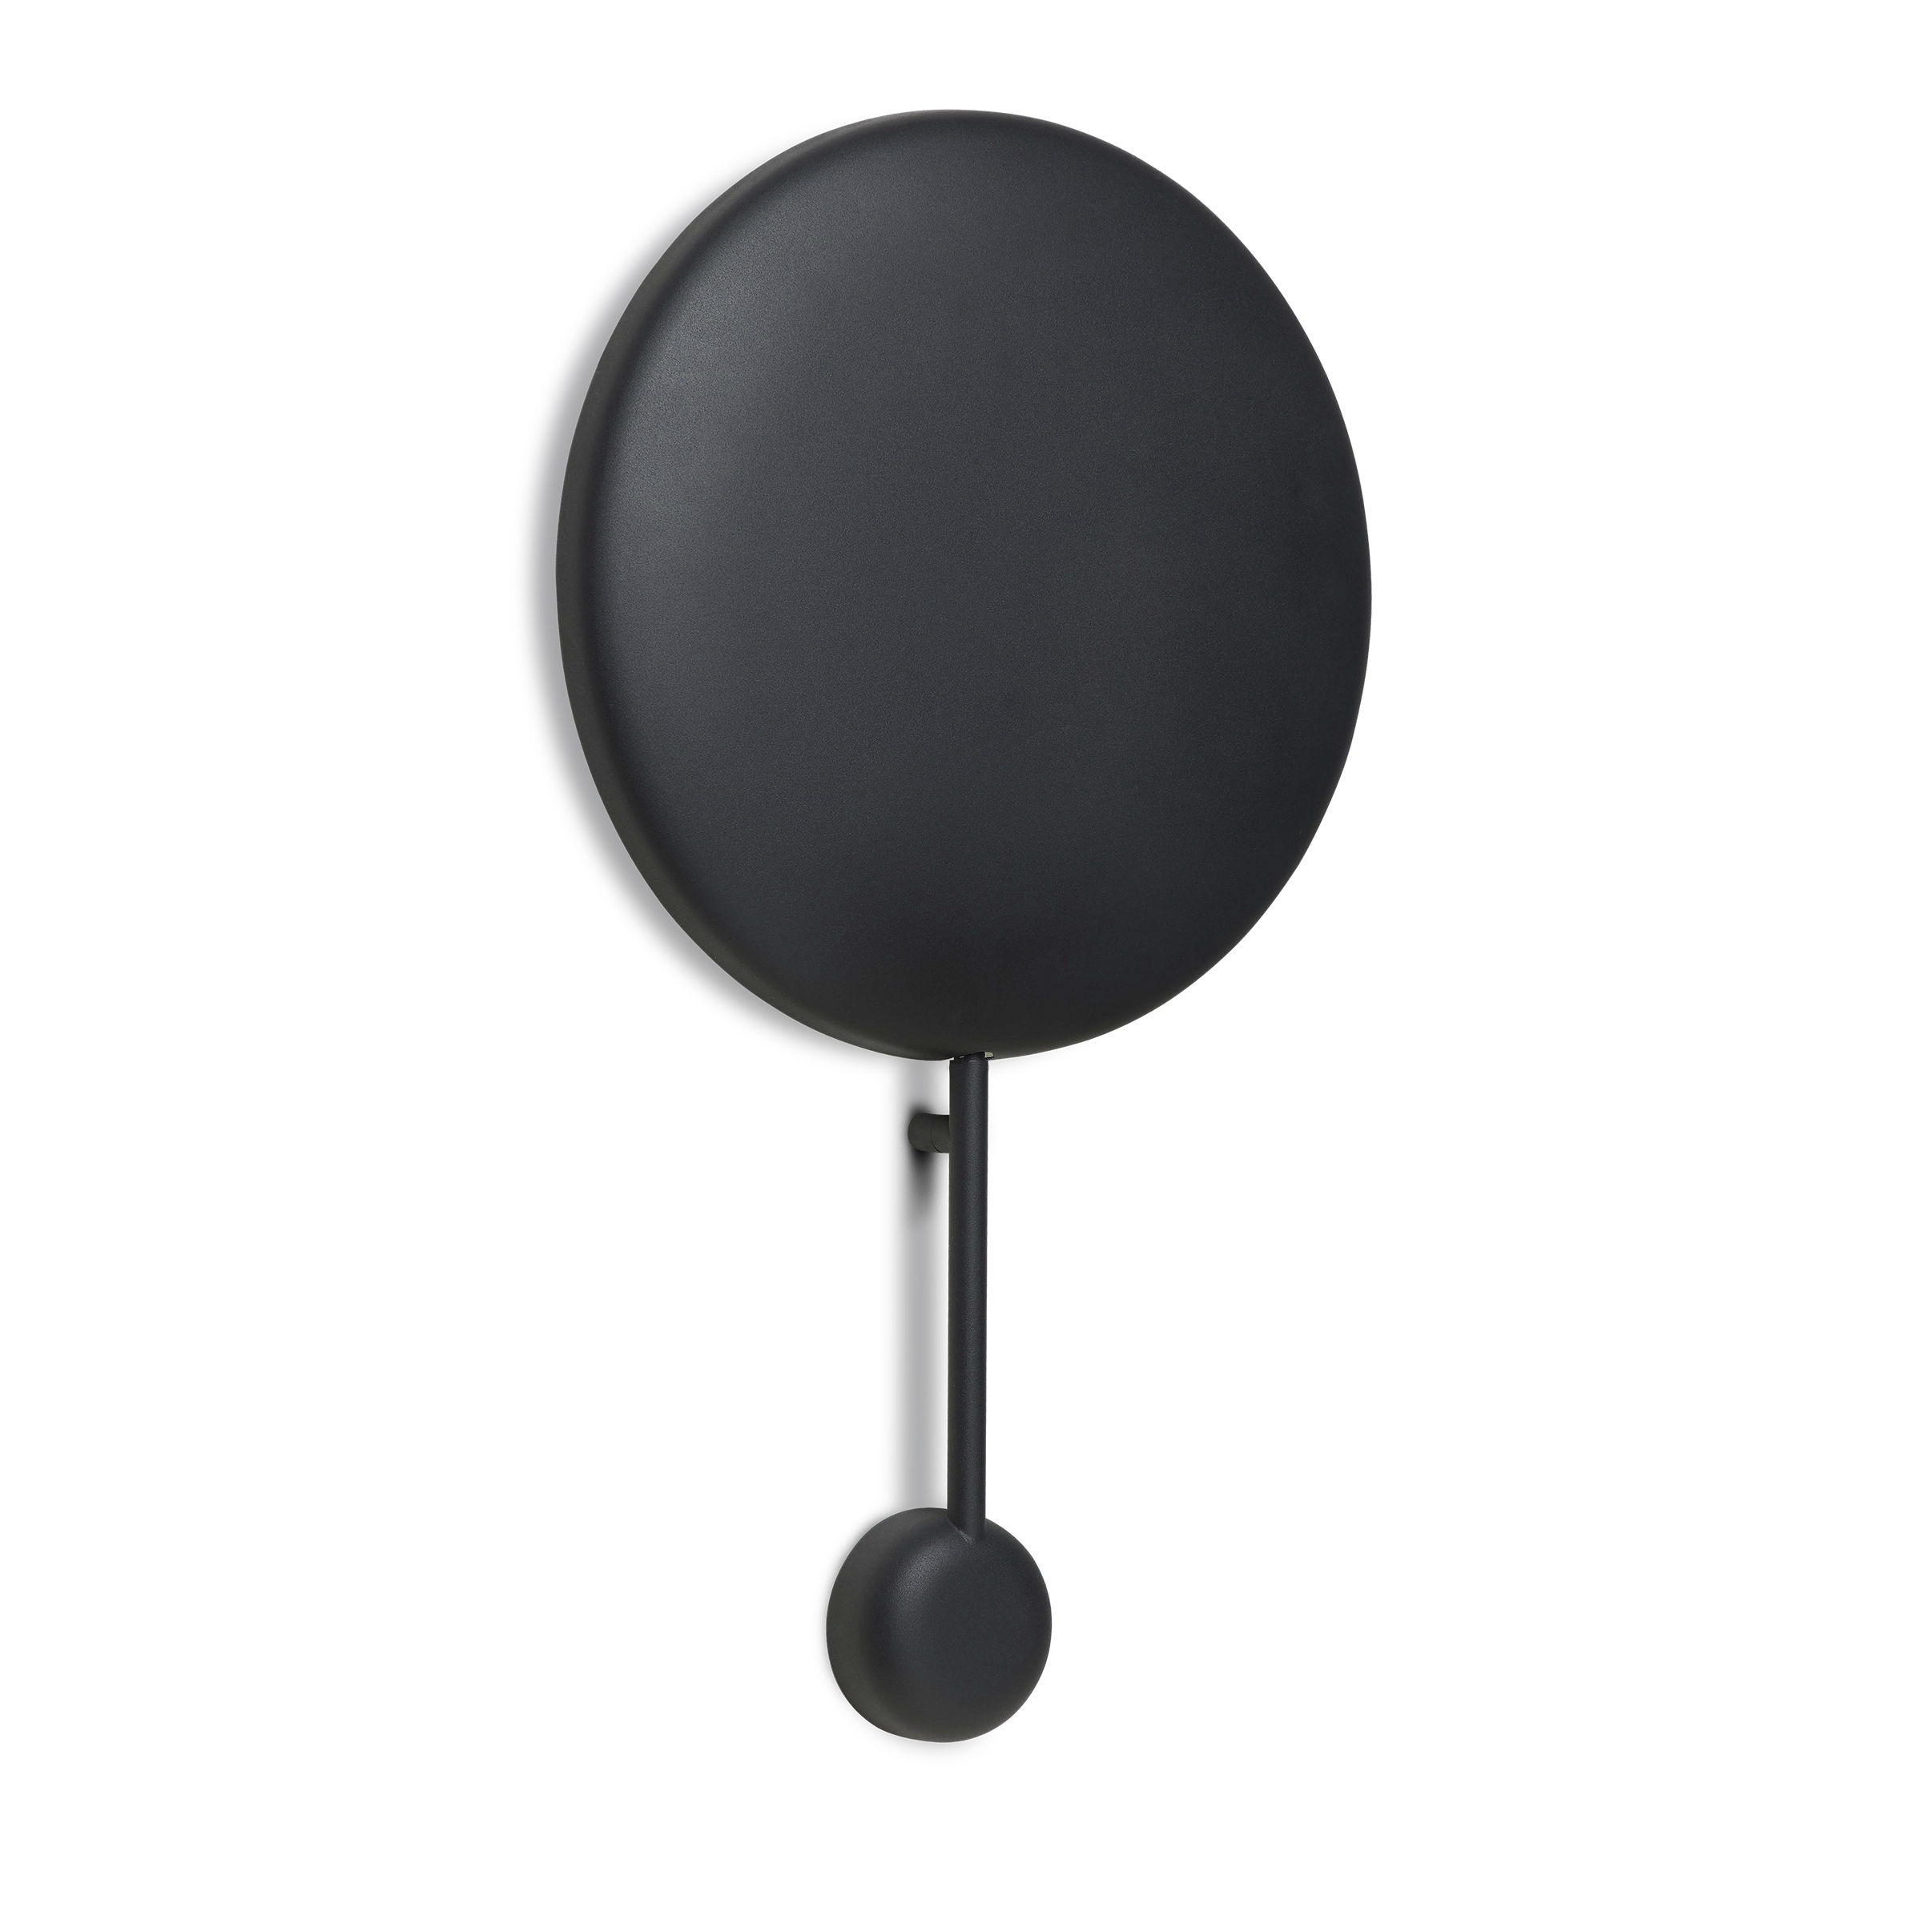 Lighting - Wall Lights - Ink LED Wall light with plug - / H 62 cm by Northern  - Mat black - Steel